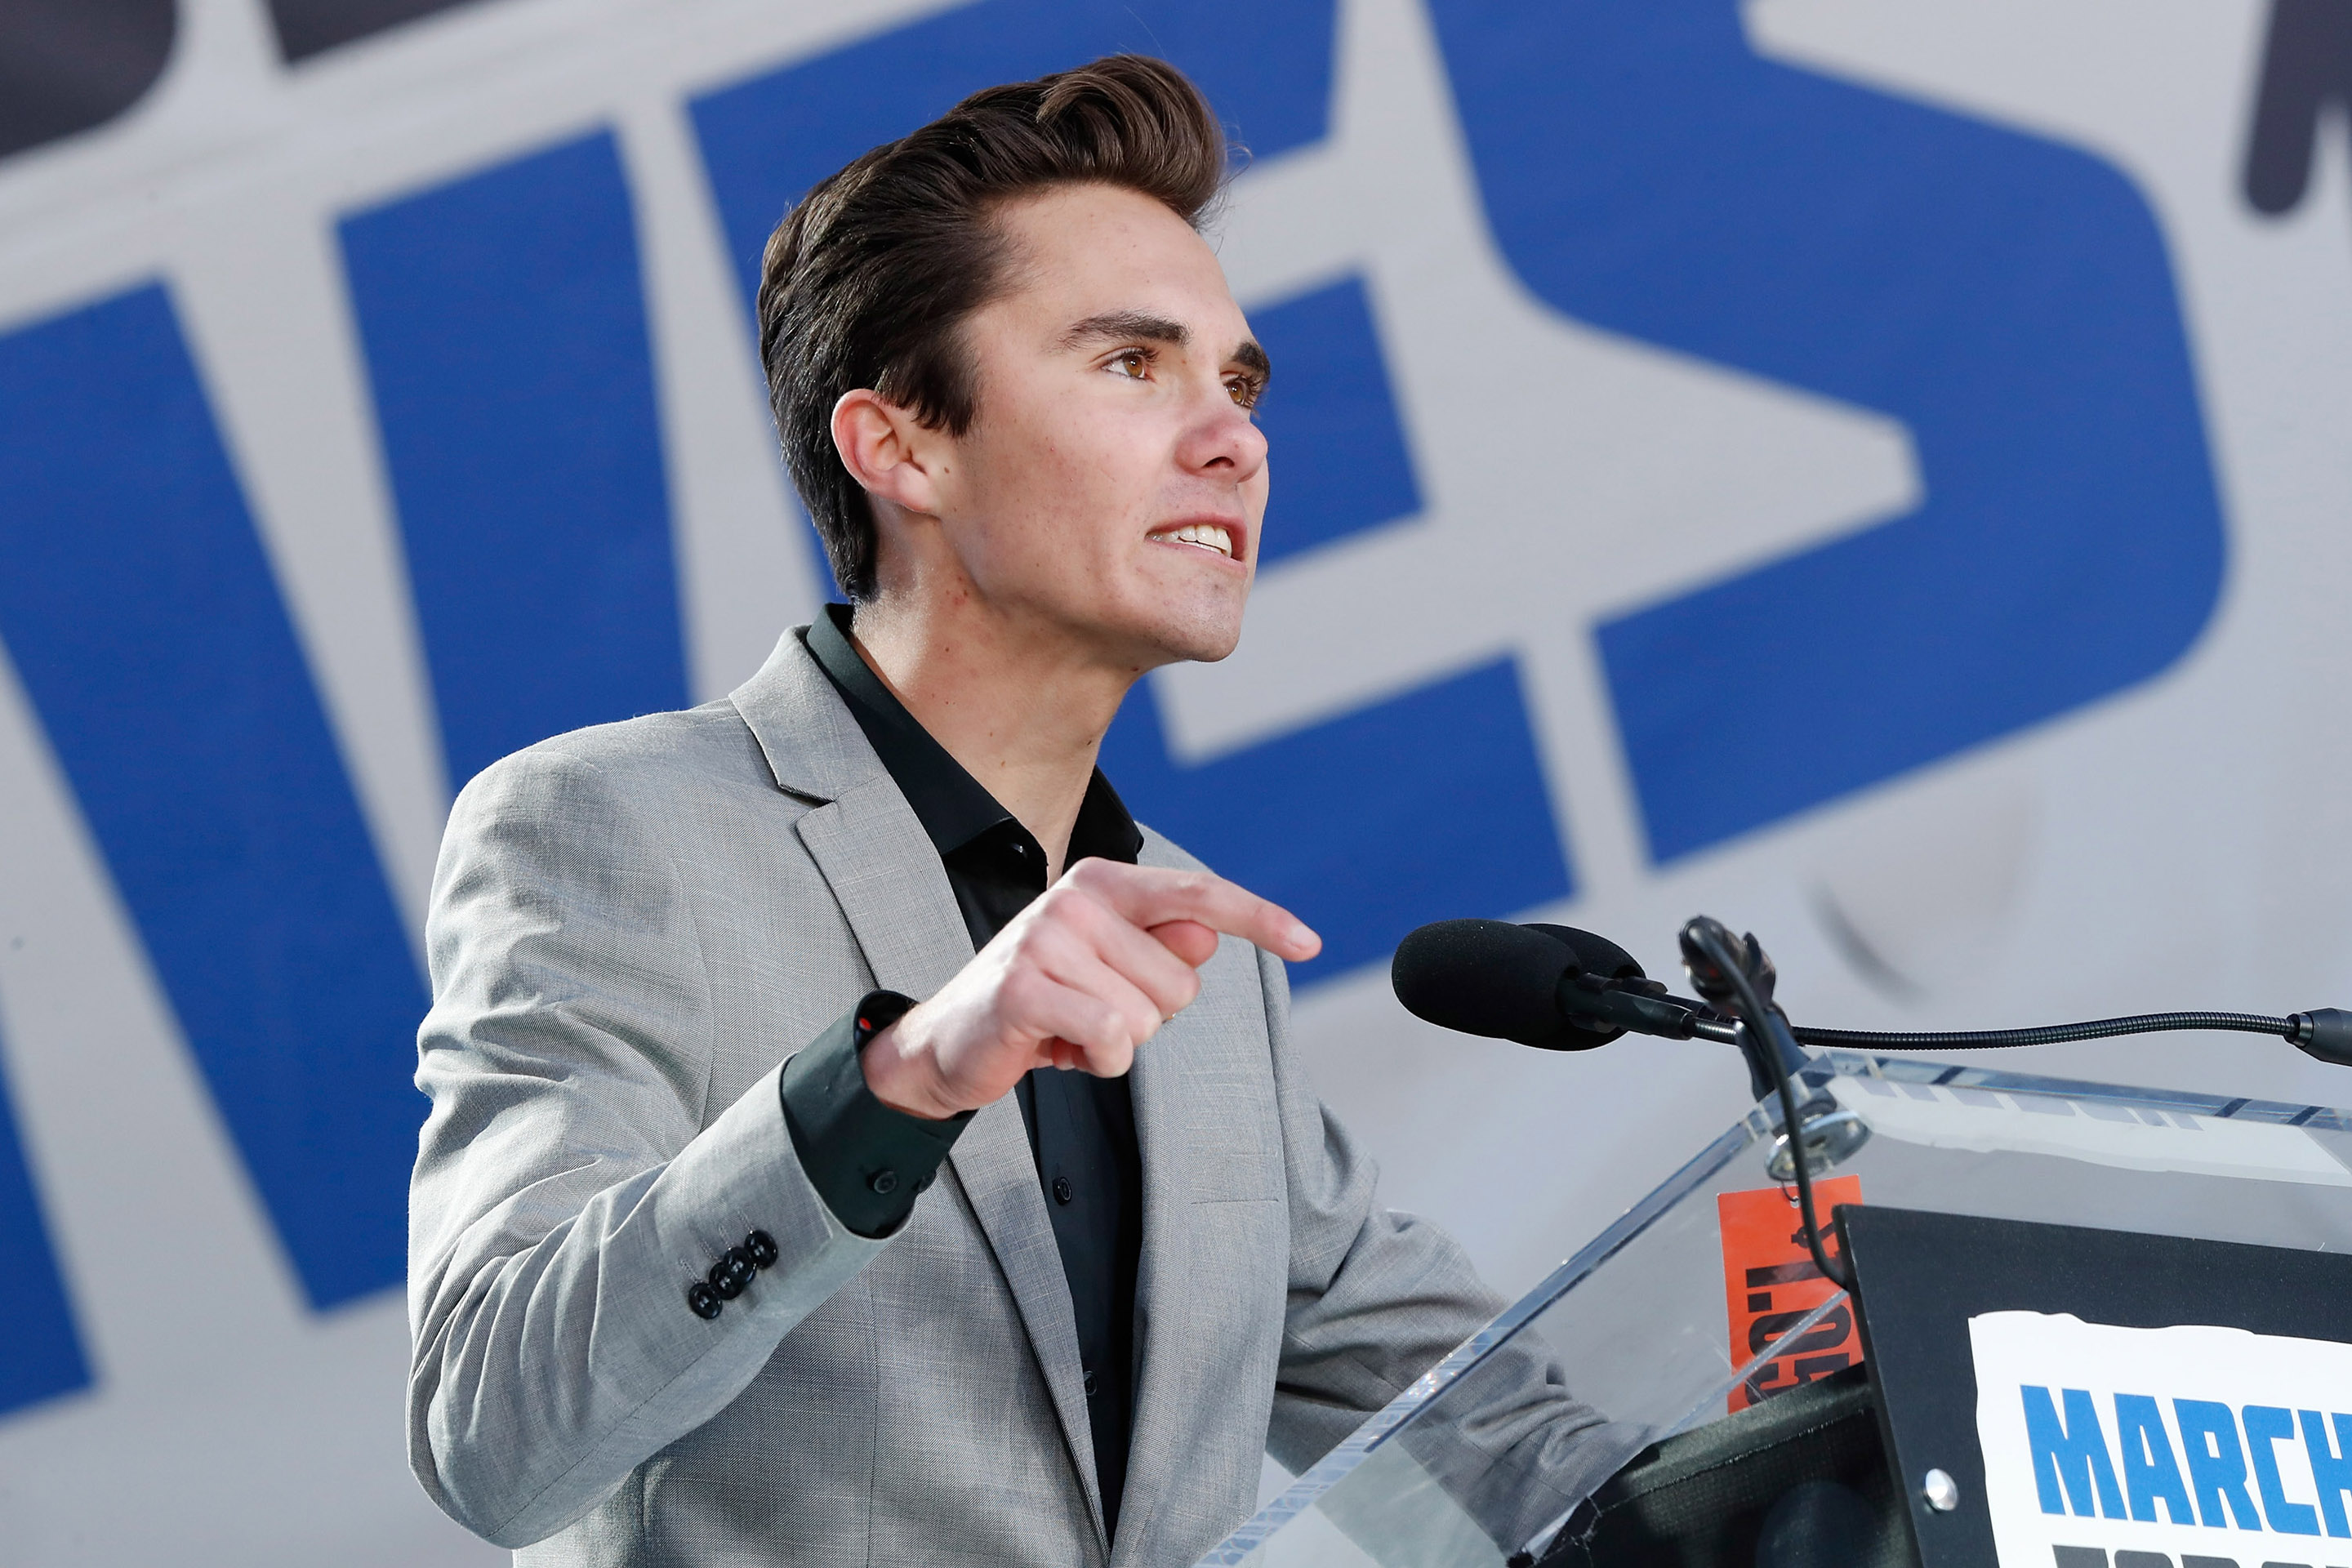 david-hogg-march-for-our-lives